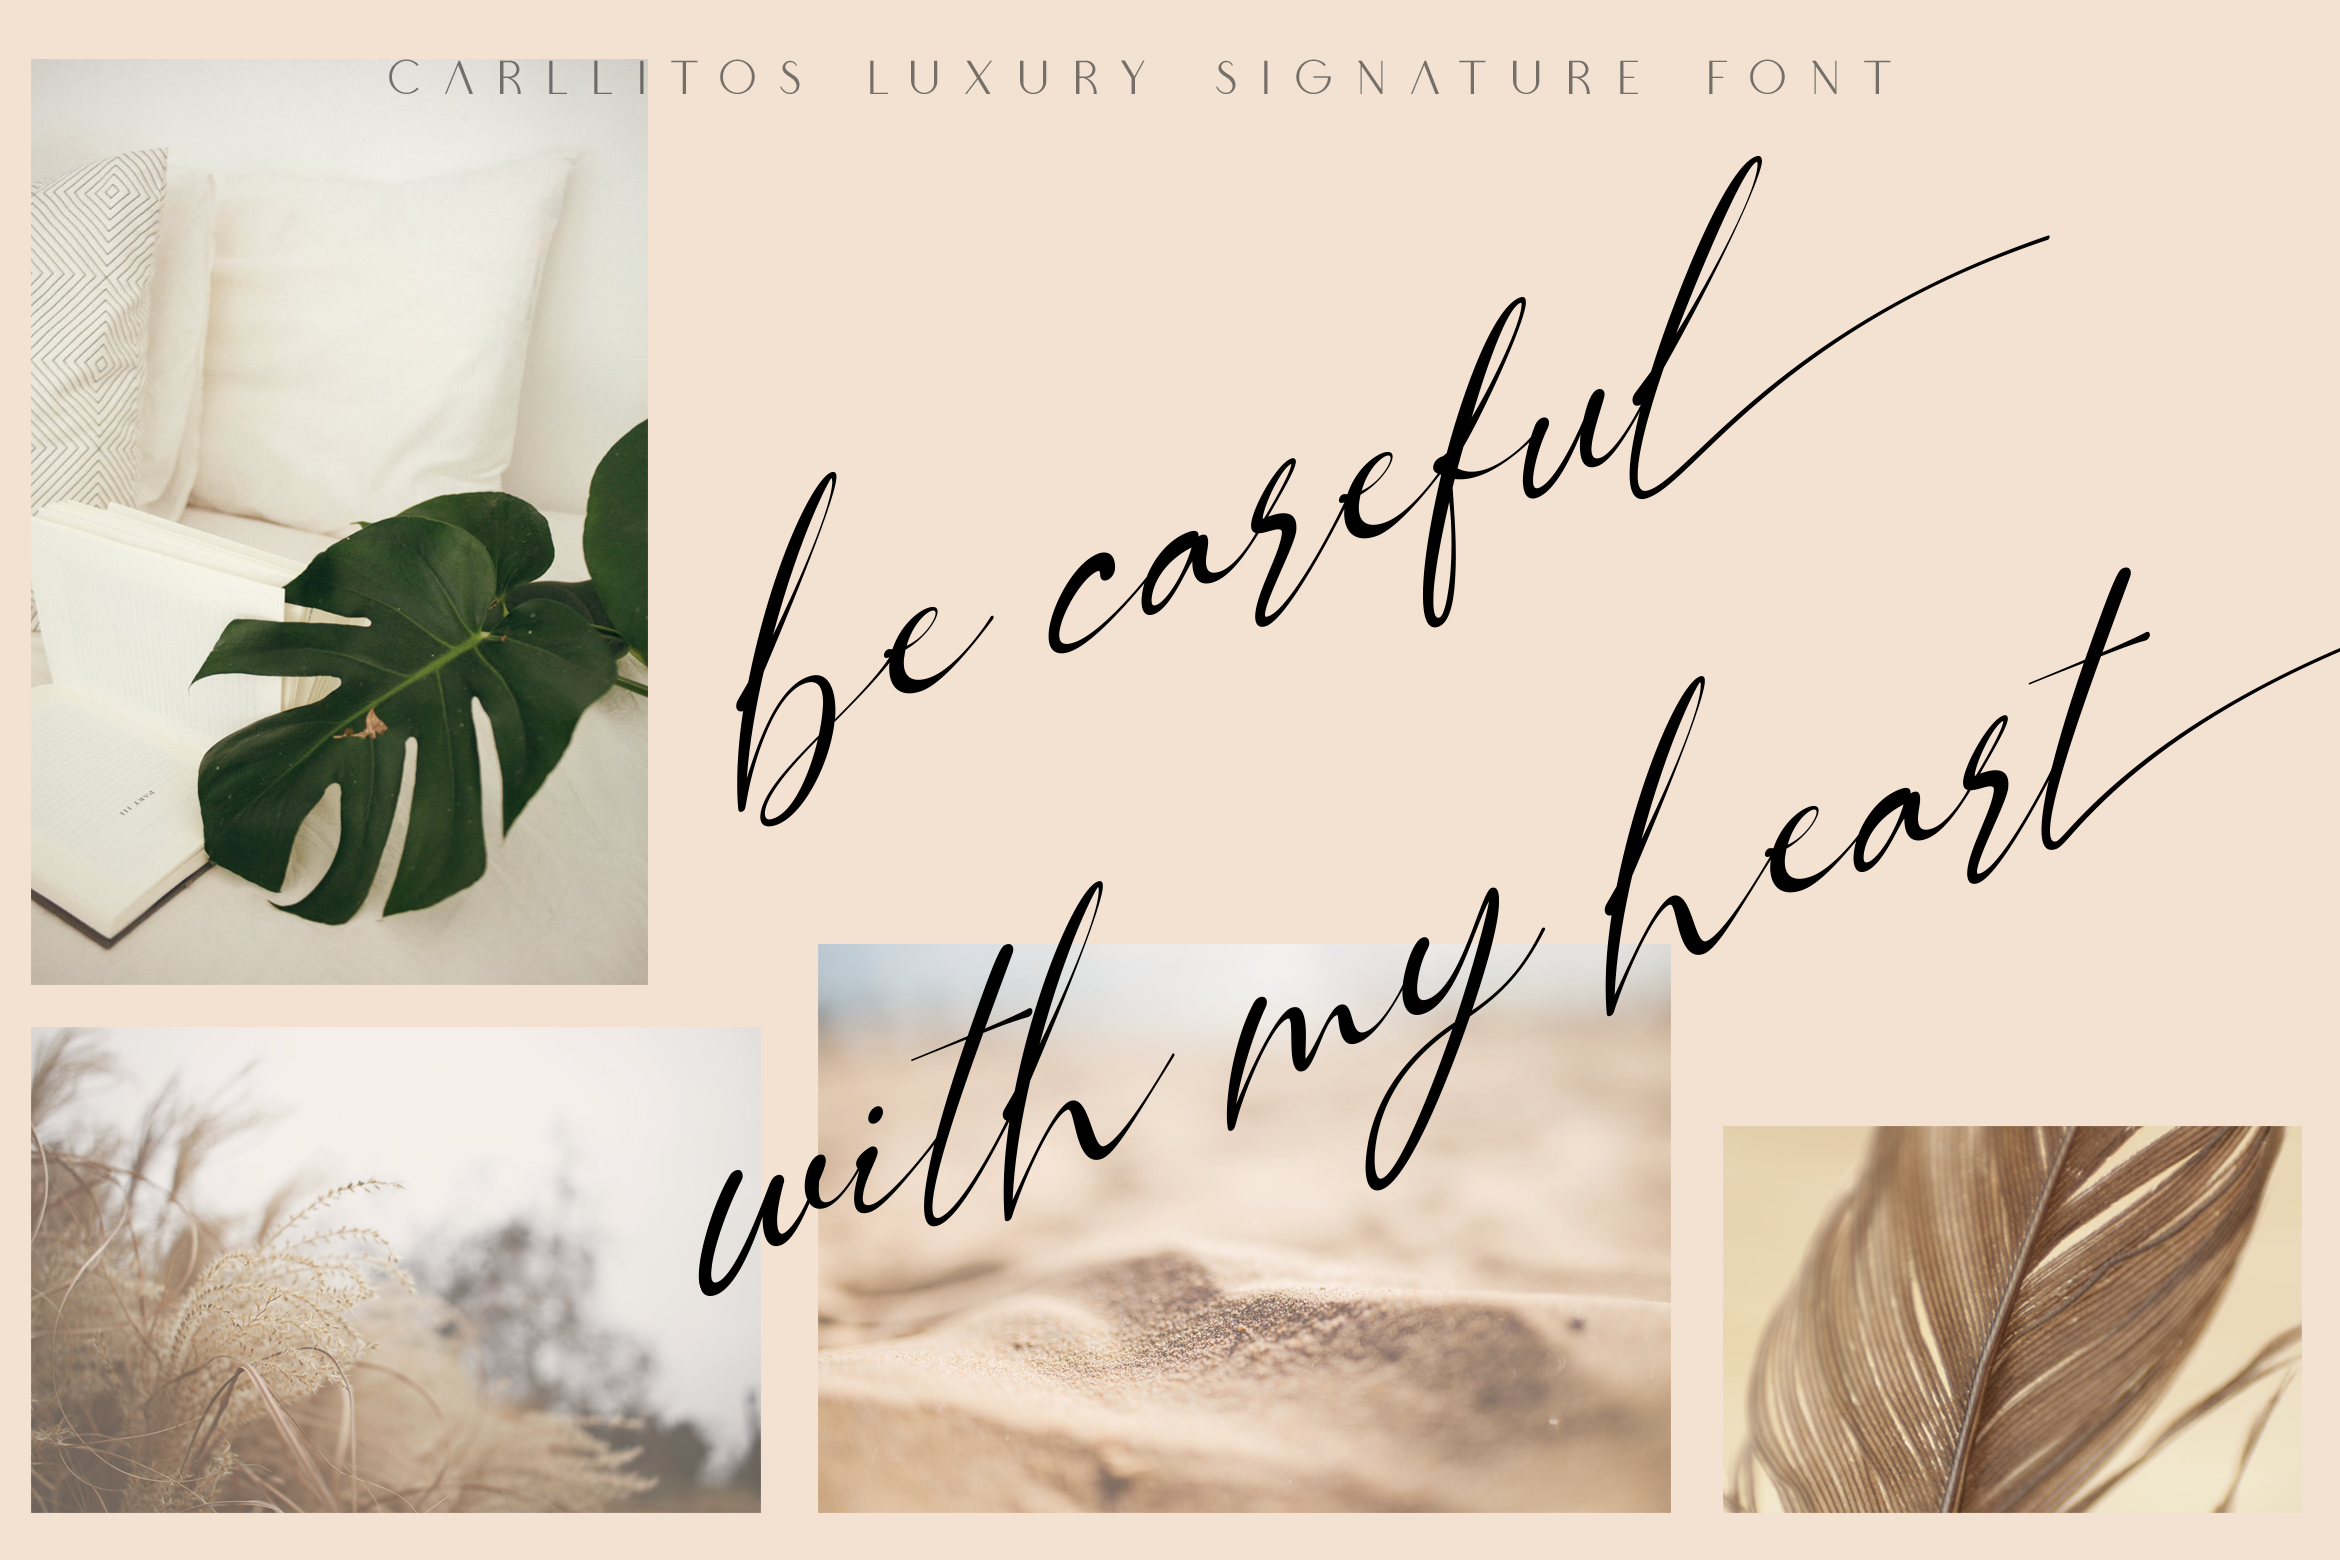 Carllitos // Luxury Signature Font example image 3